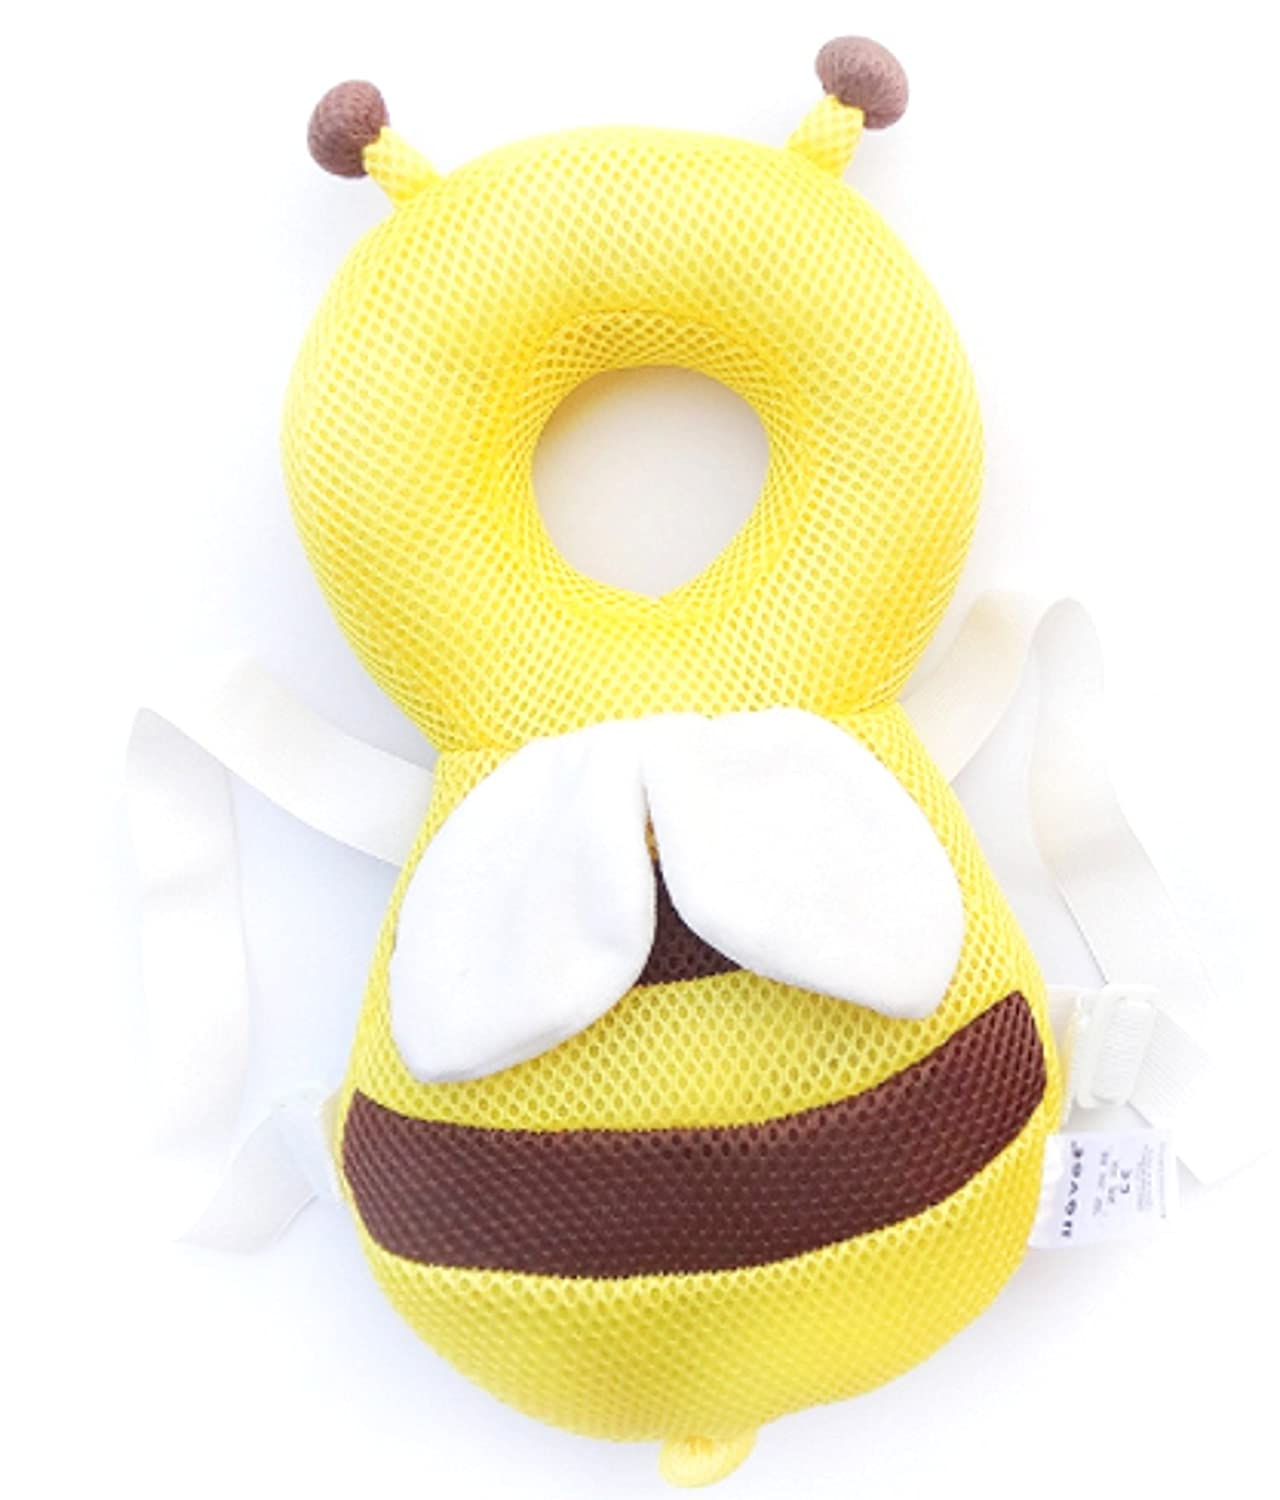 Mother & Kids Honey Baby Pillow Safety Seat Belt Harness Shoulder Pad Cover Children Protection Covers Cushion Support Activity & Gear